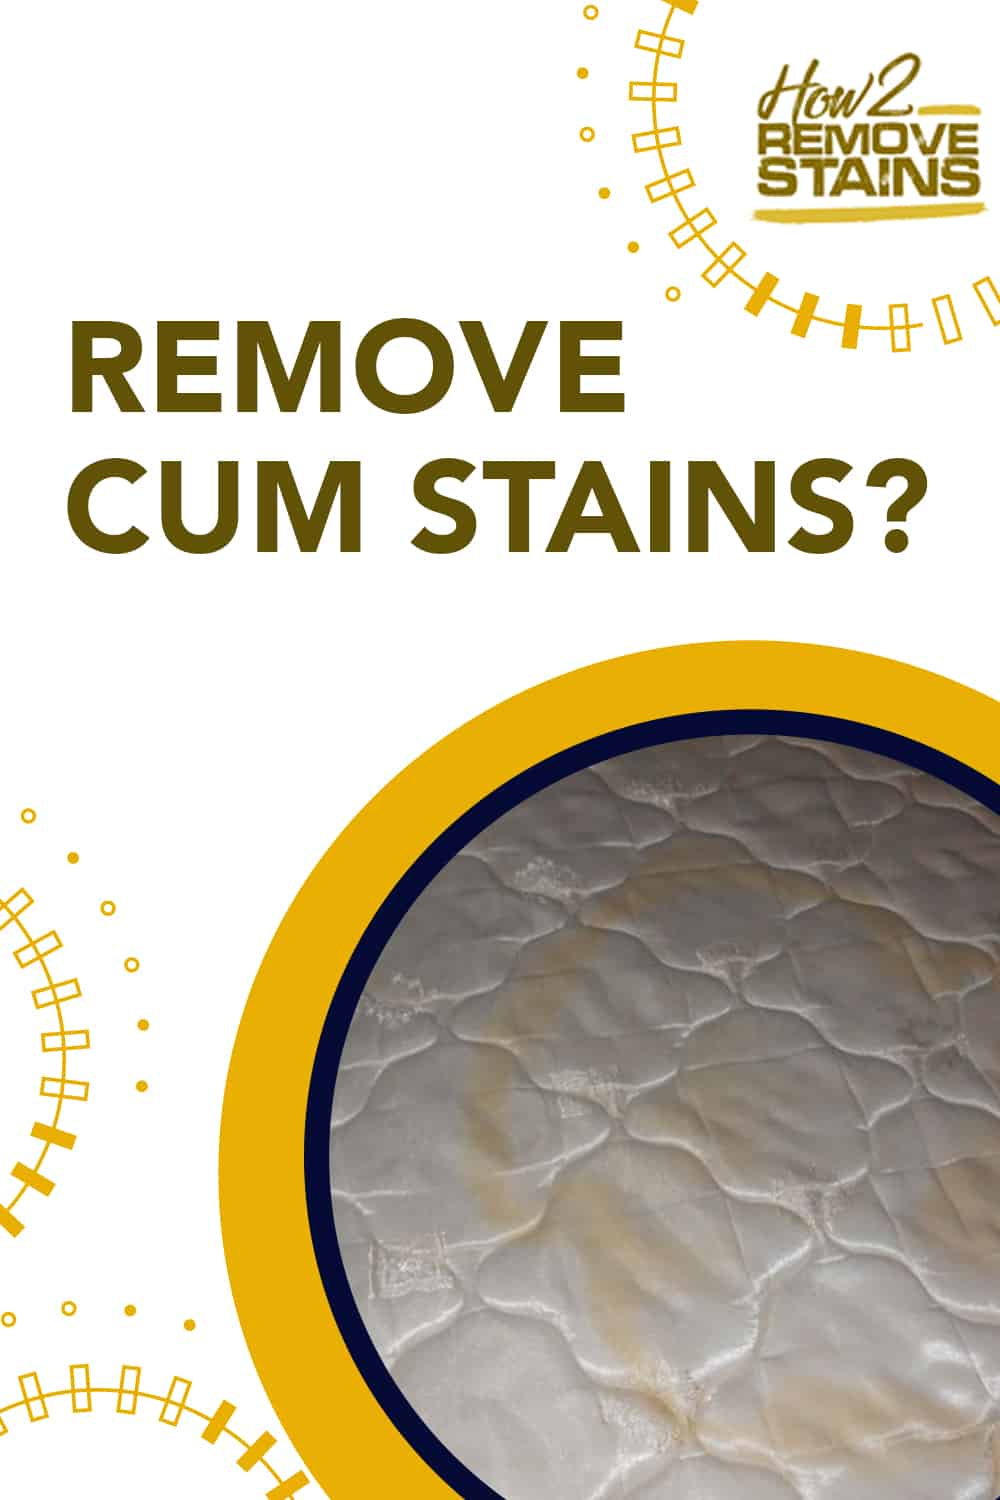 Stain clean cum how a to Cleaning dried